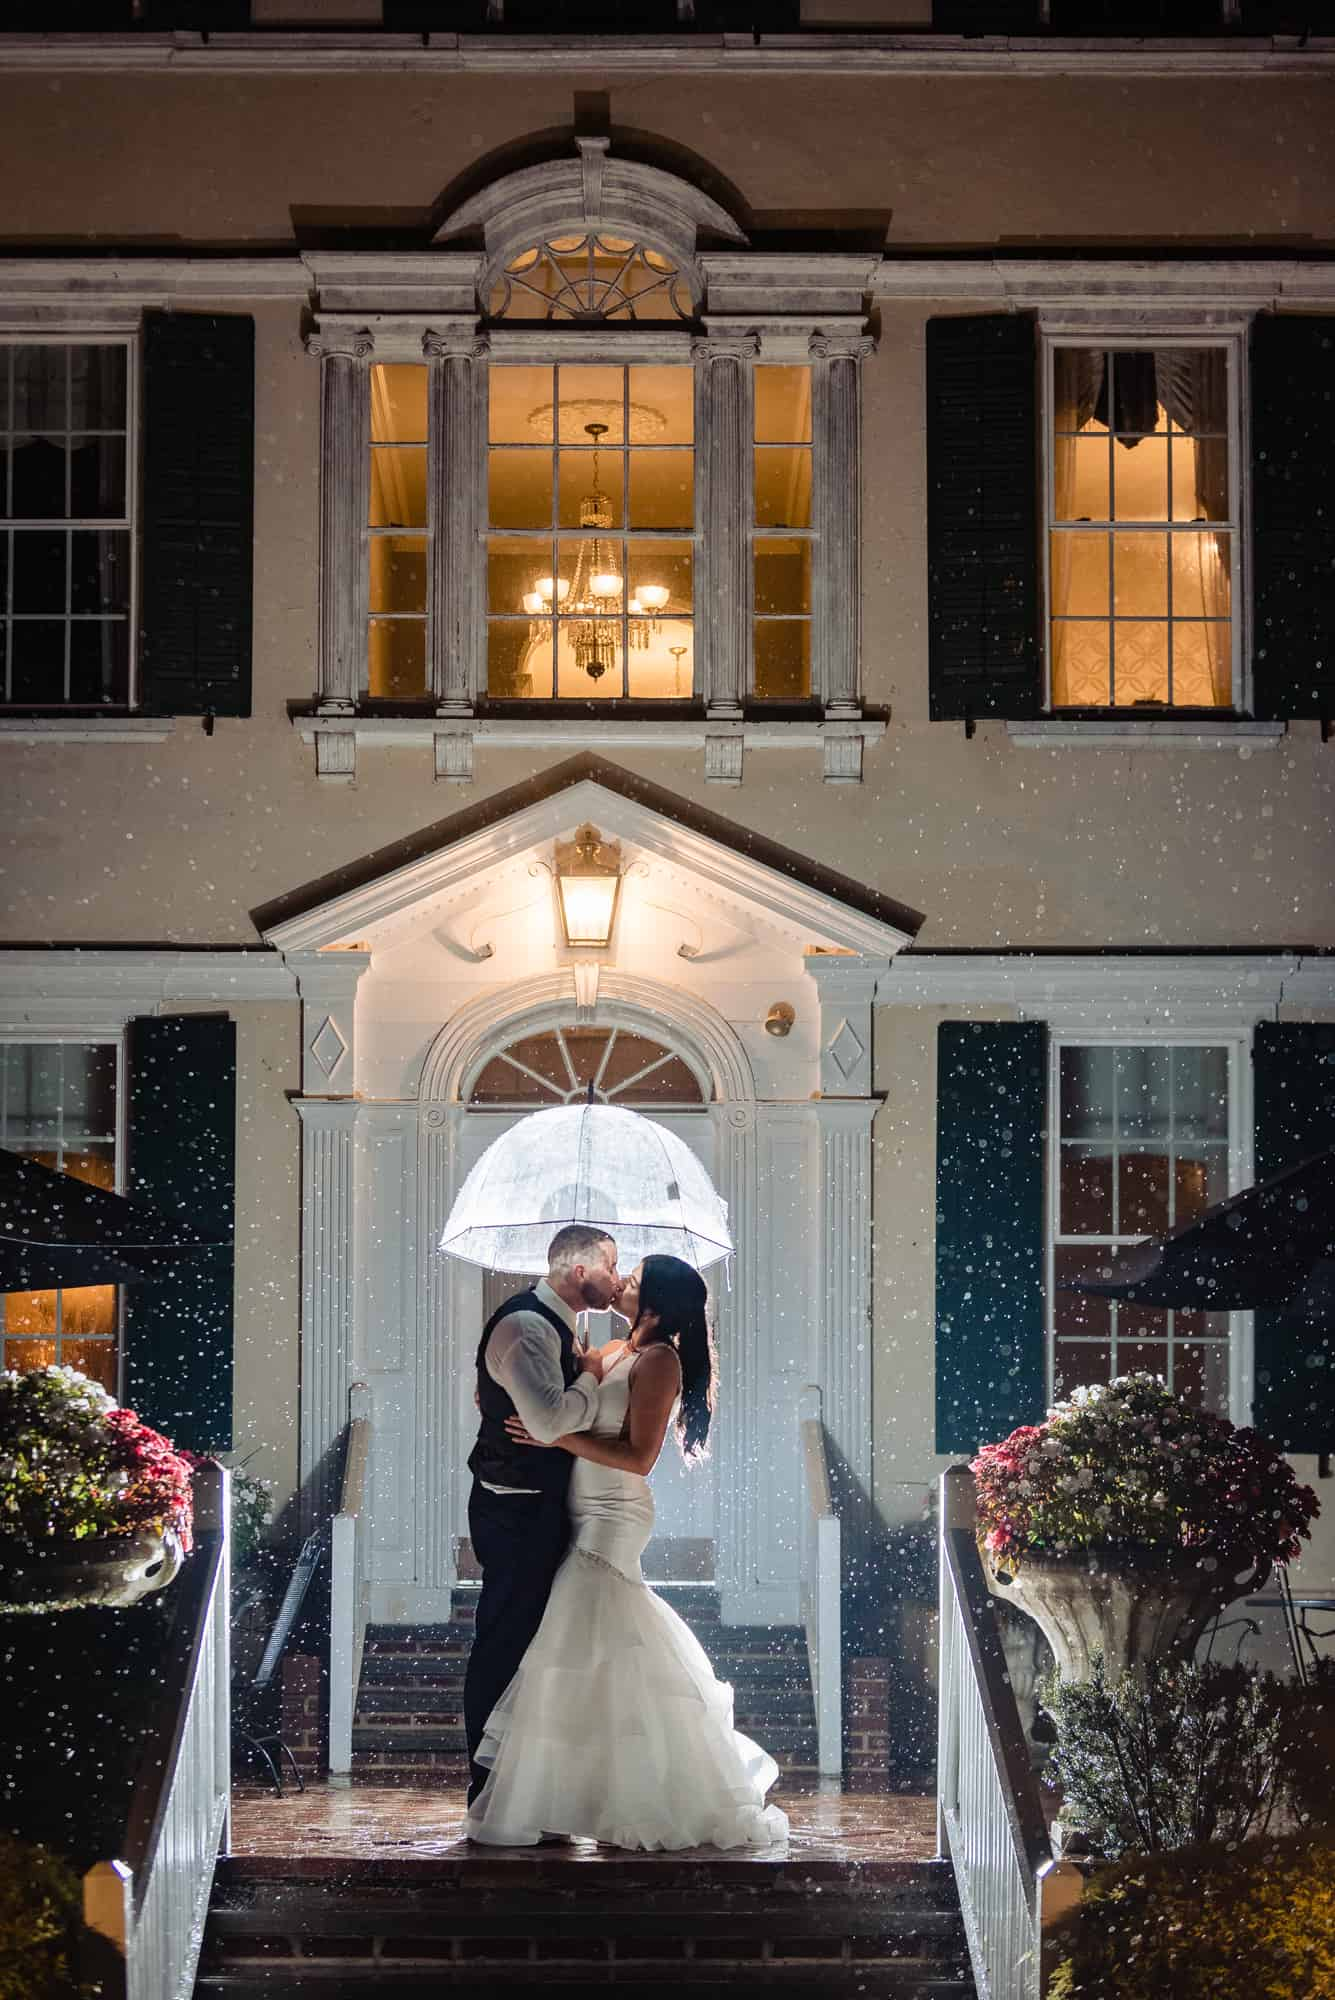 wedding day, bride and groom kissing under umbrella on rainy night